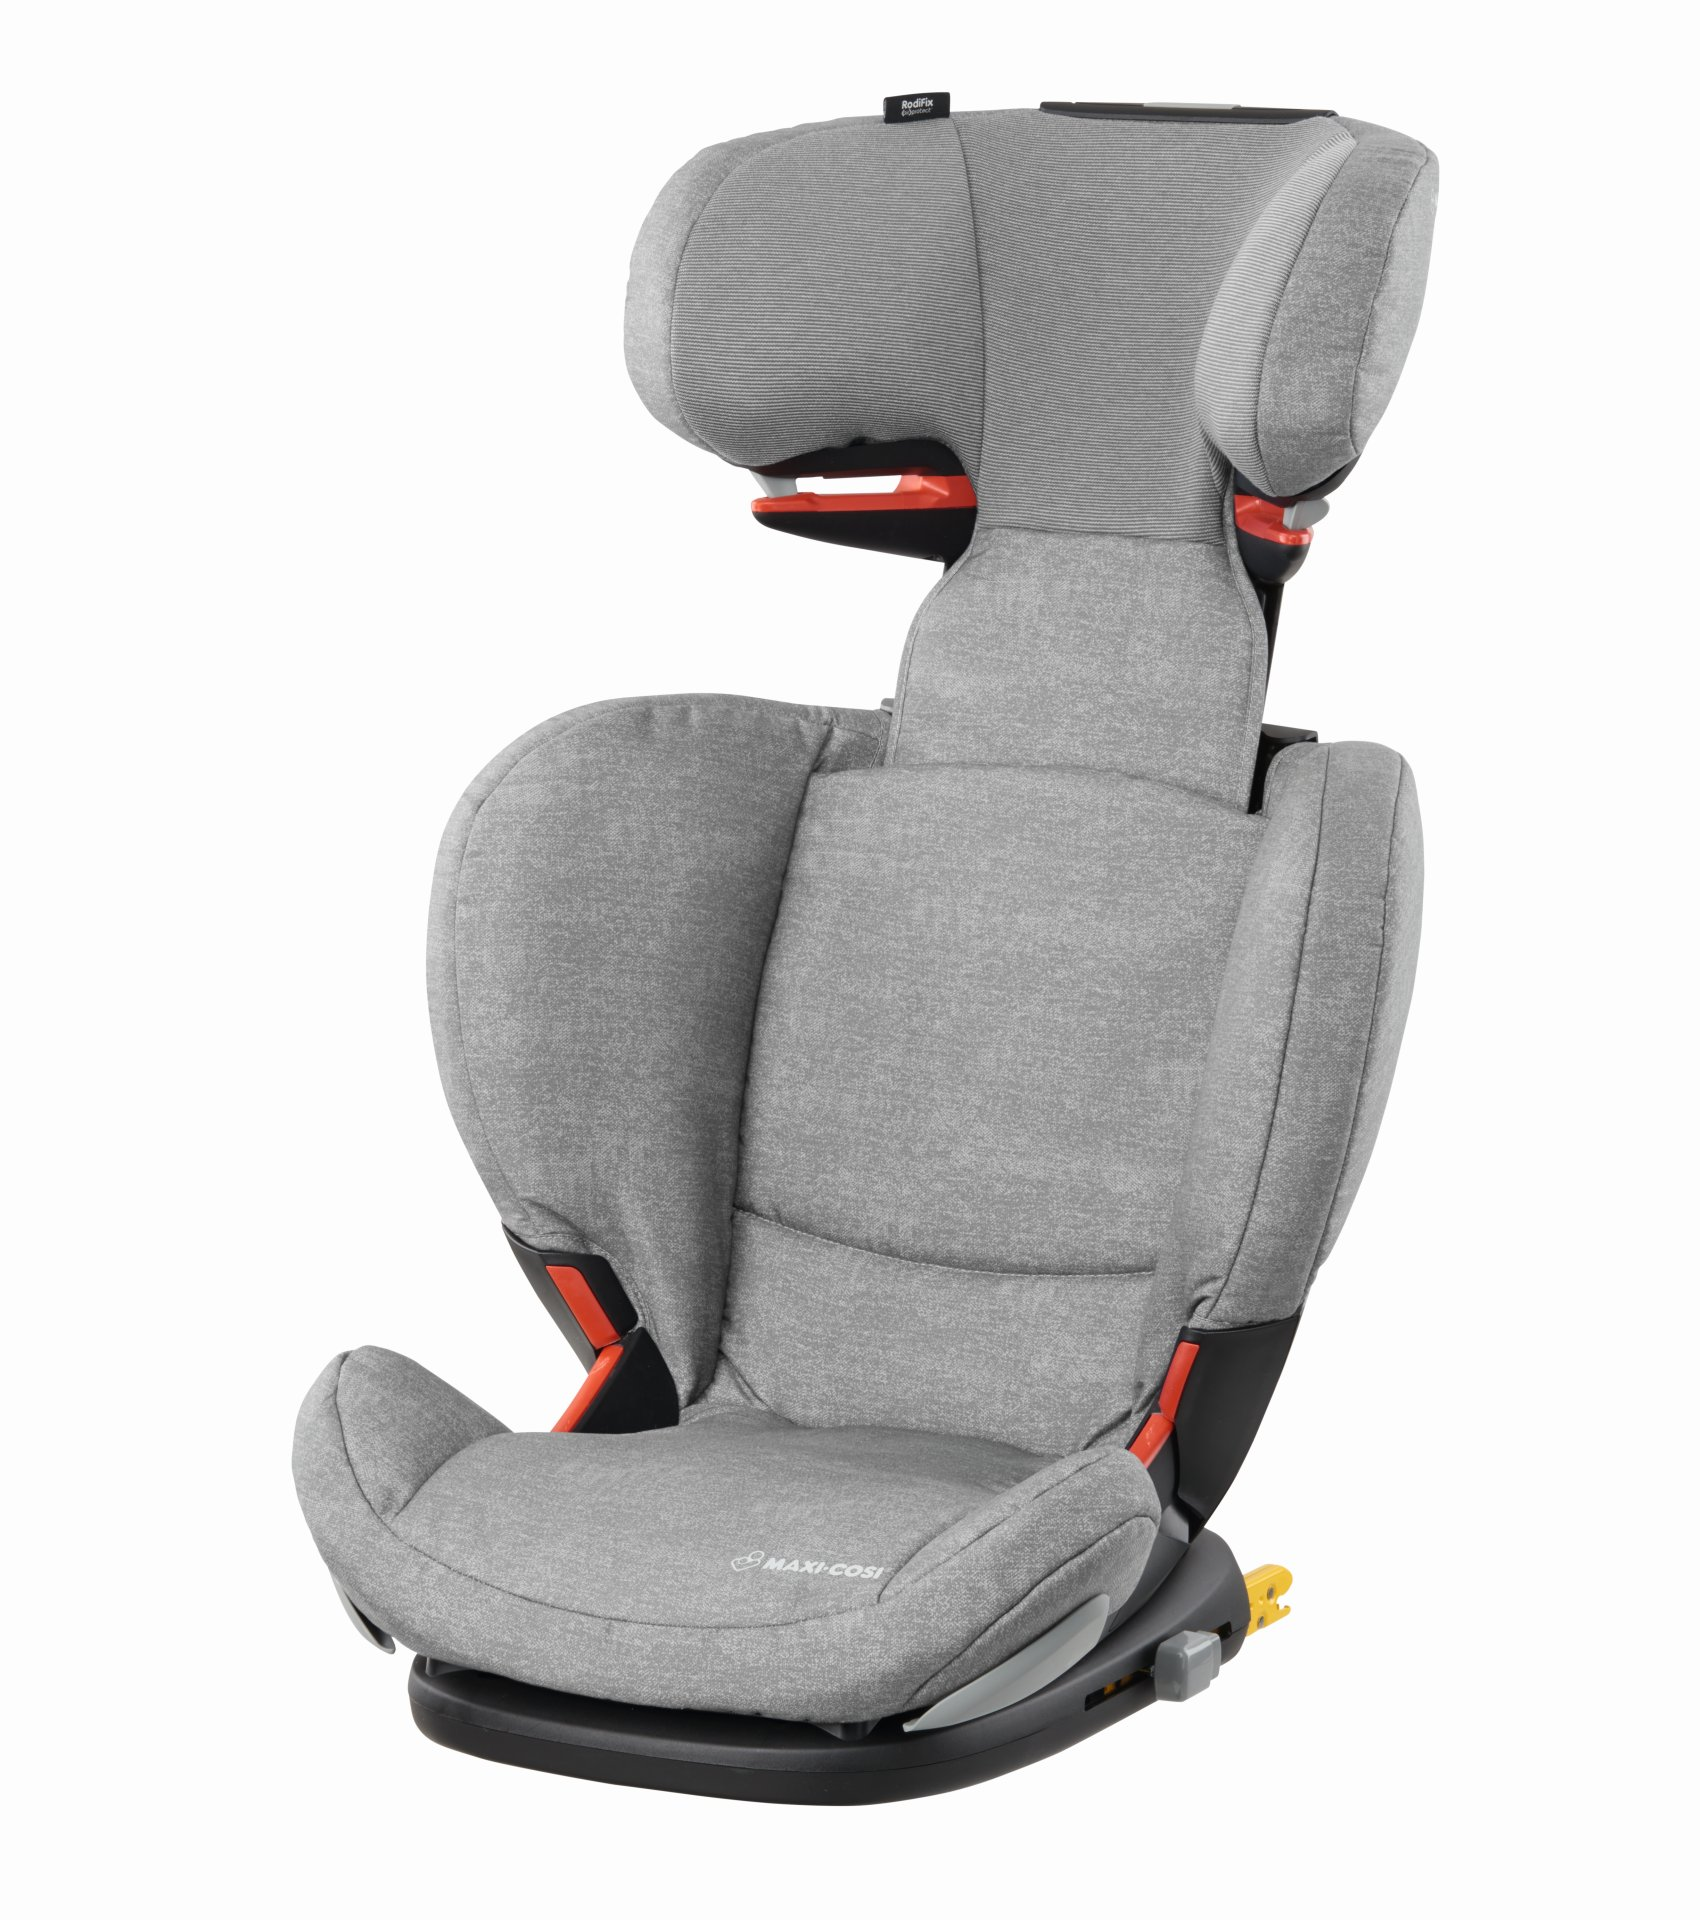 maxi cosi rodifix air protect isofix 2019 nomad grey kidsroom. Black Bedroom Furniture Sets. Home Design Ideas